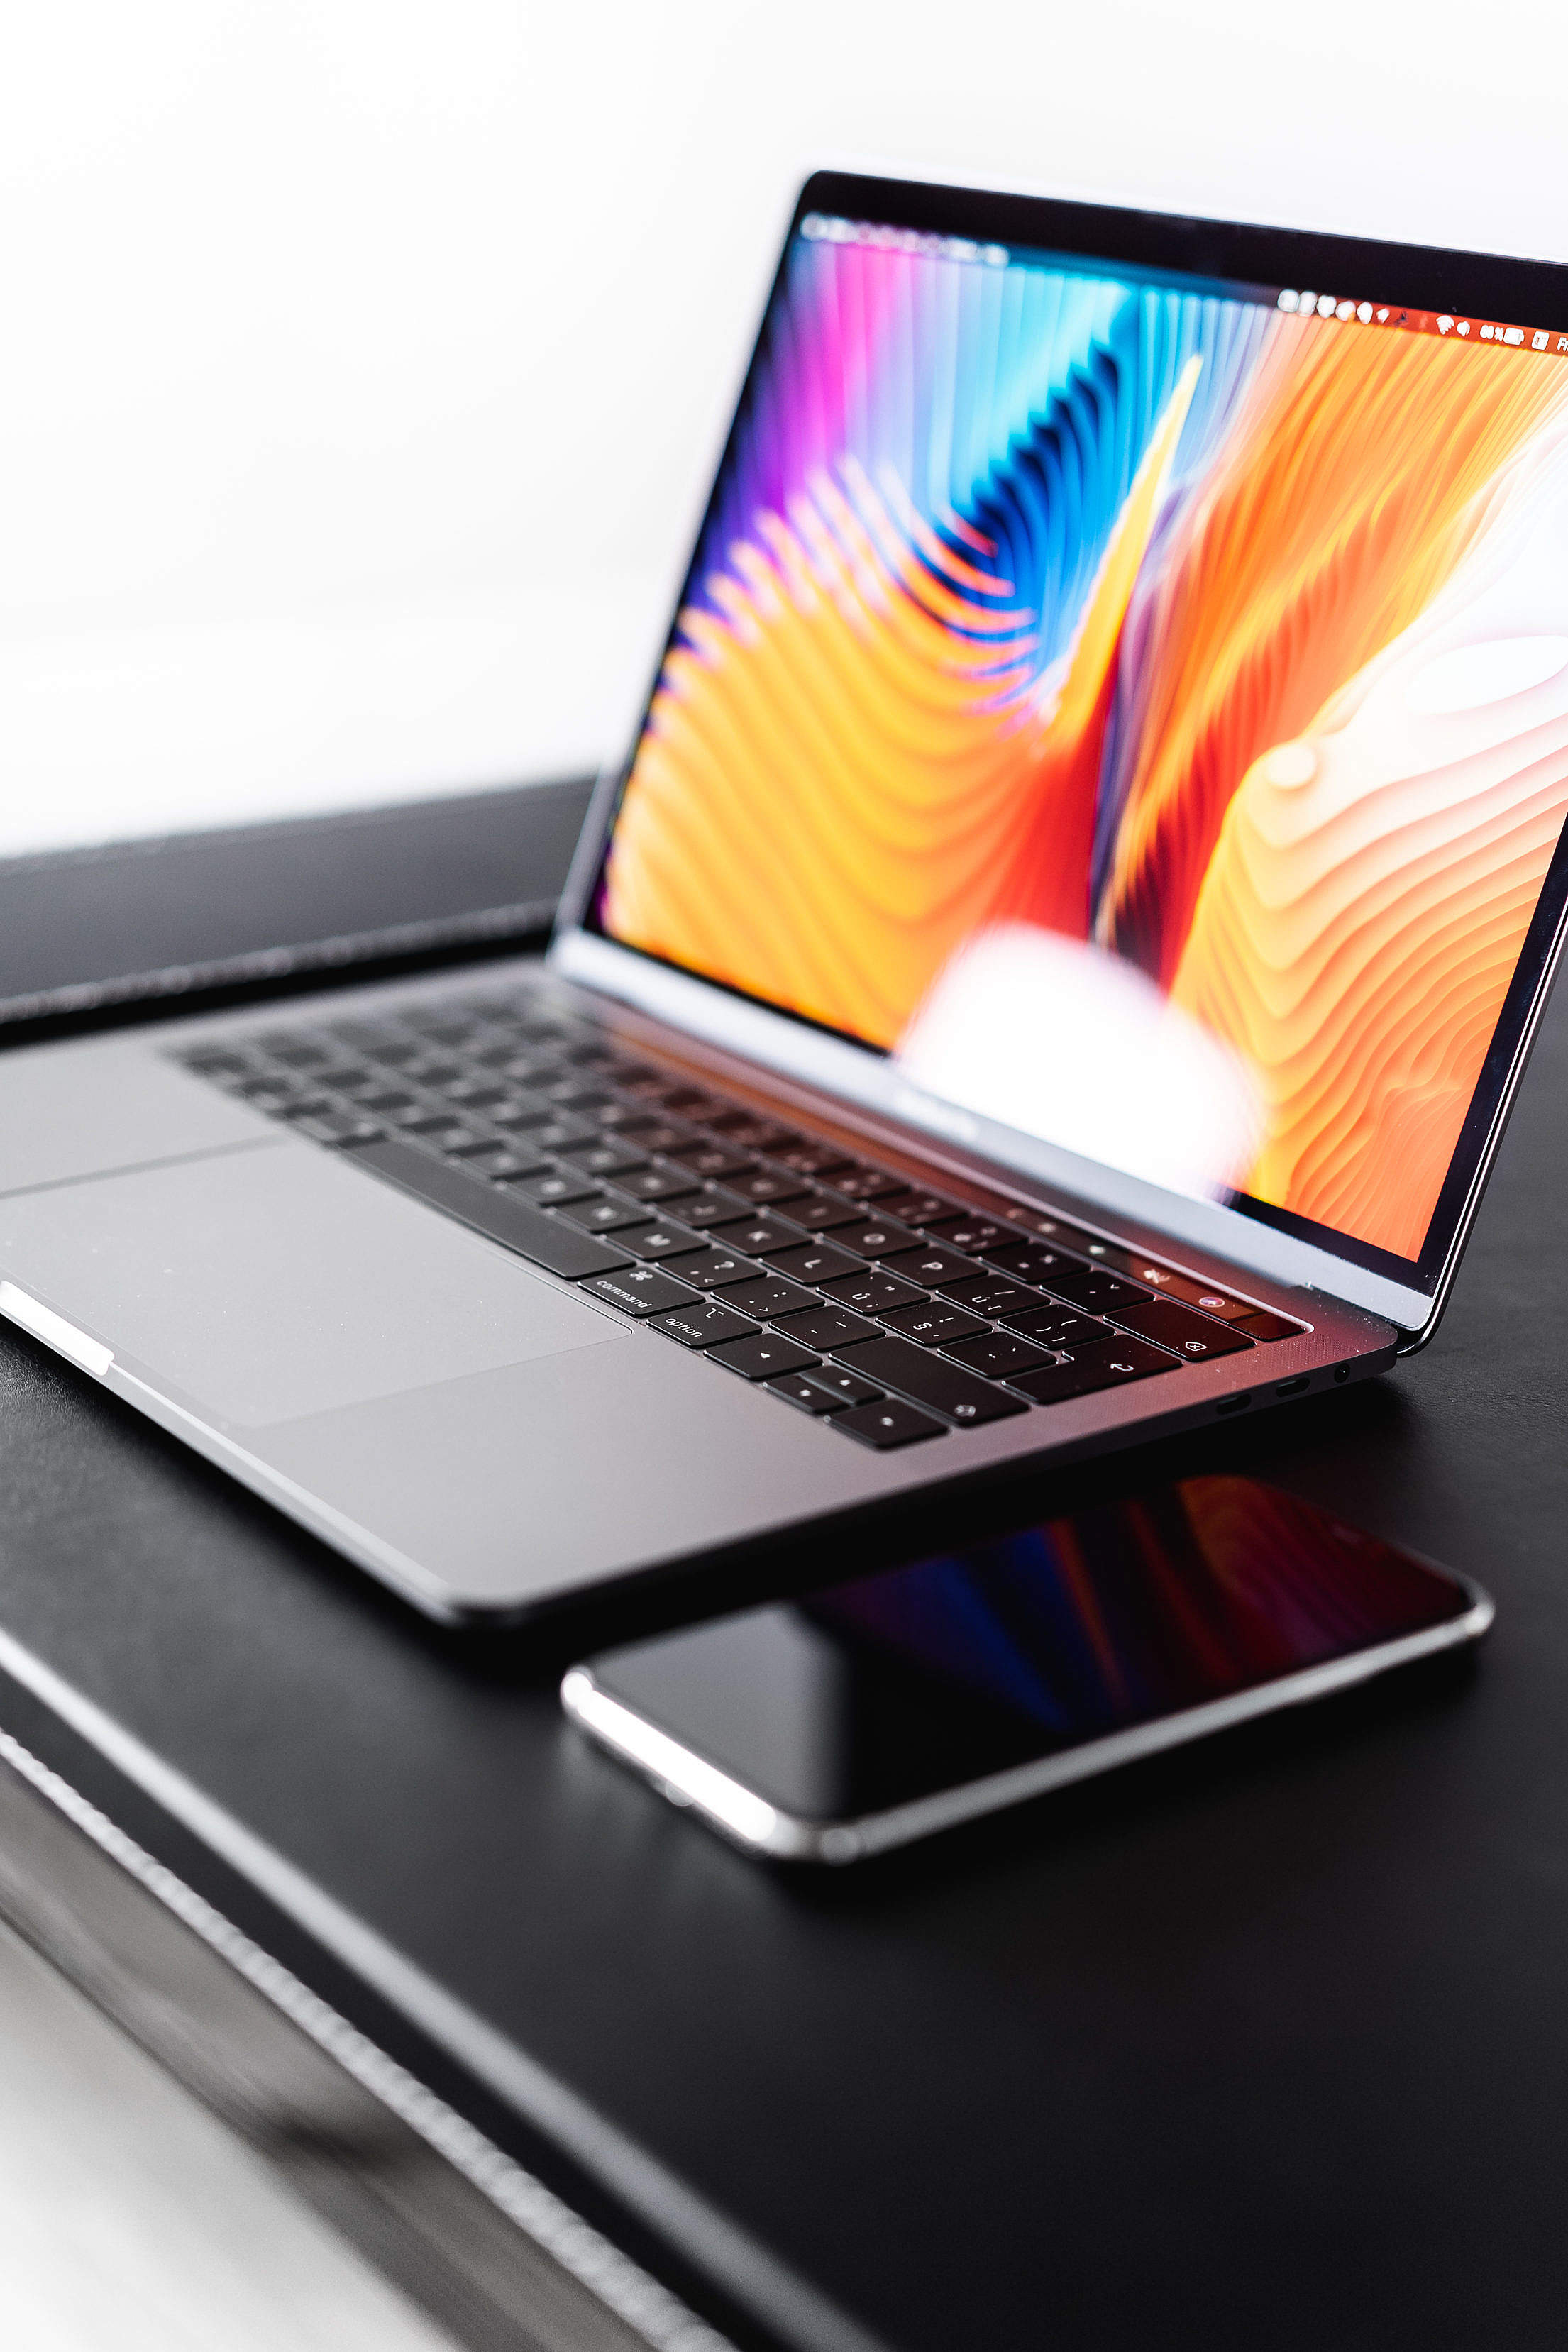 New MacBook Pro with iPhone Free Stock Photo